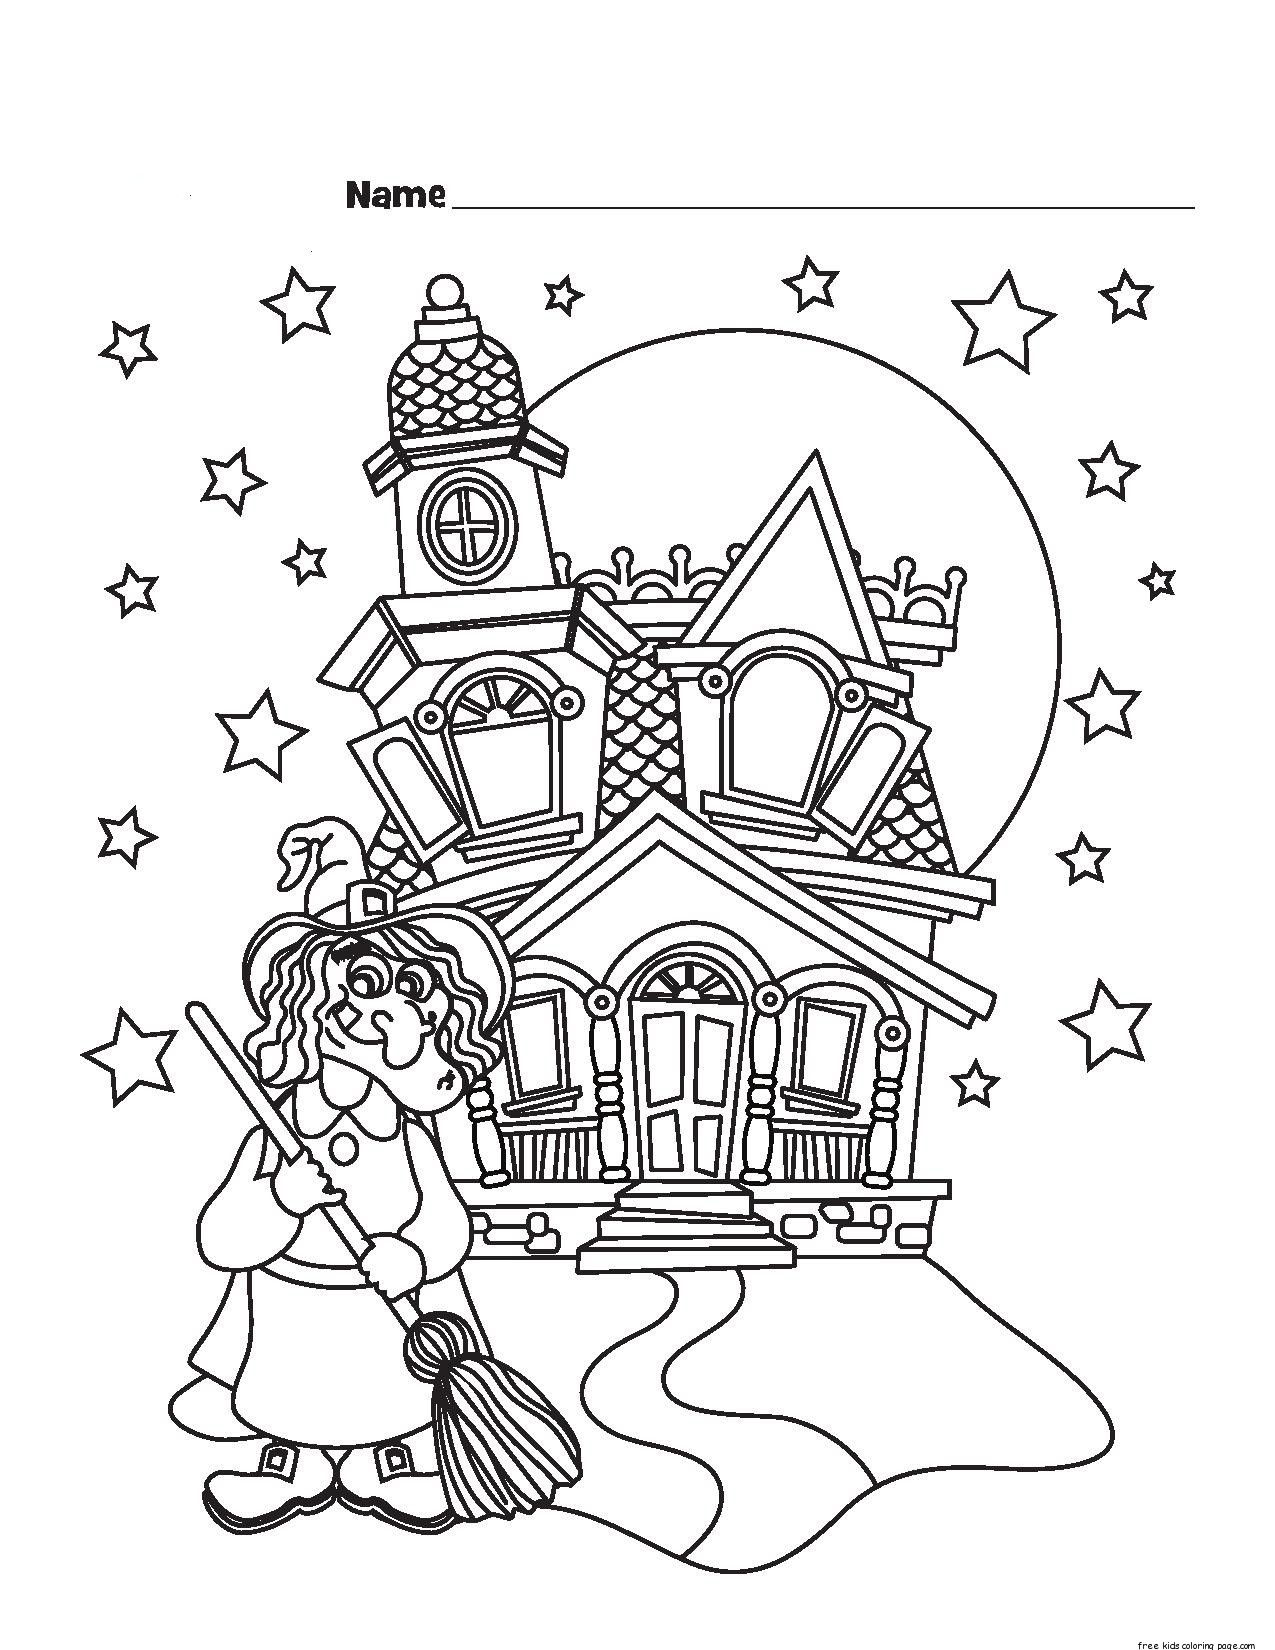 Printable Halloween Witch Castle Coloring Pagesfree